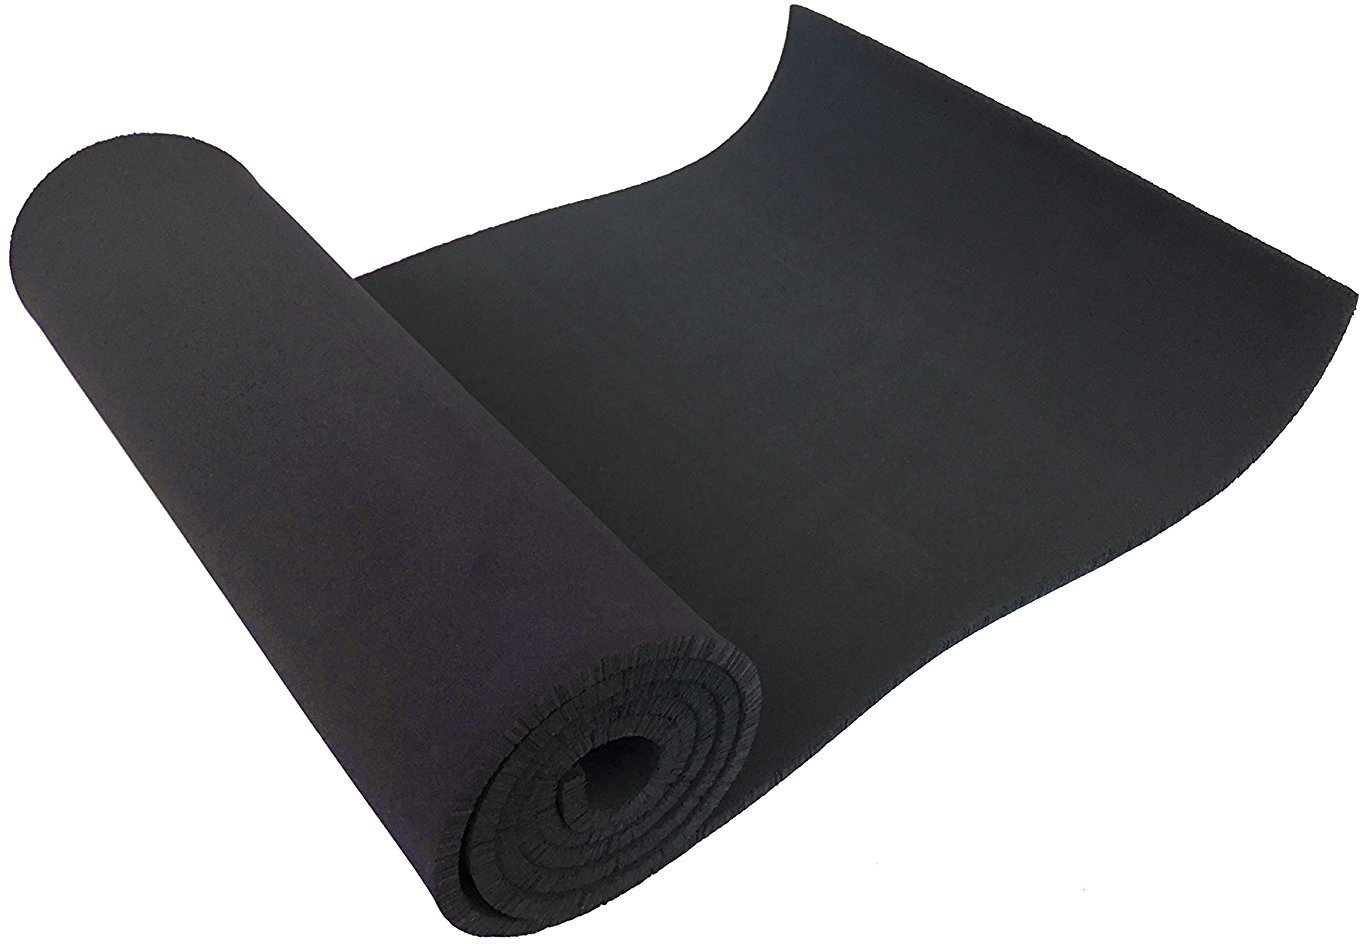 Xcel Extra Large, Premium Neoprene Foam Rubber Sheet - 72'' Wide x 17'' Length x 3/8'' Thick,Soft/Medium for Cosplay Costume, DIY Projects, and Weatherstrip, Made in USA by Xcel